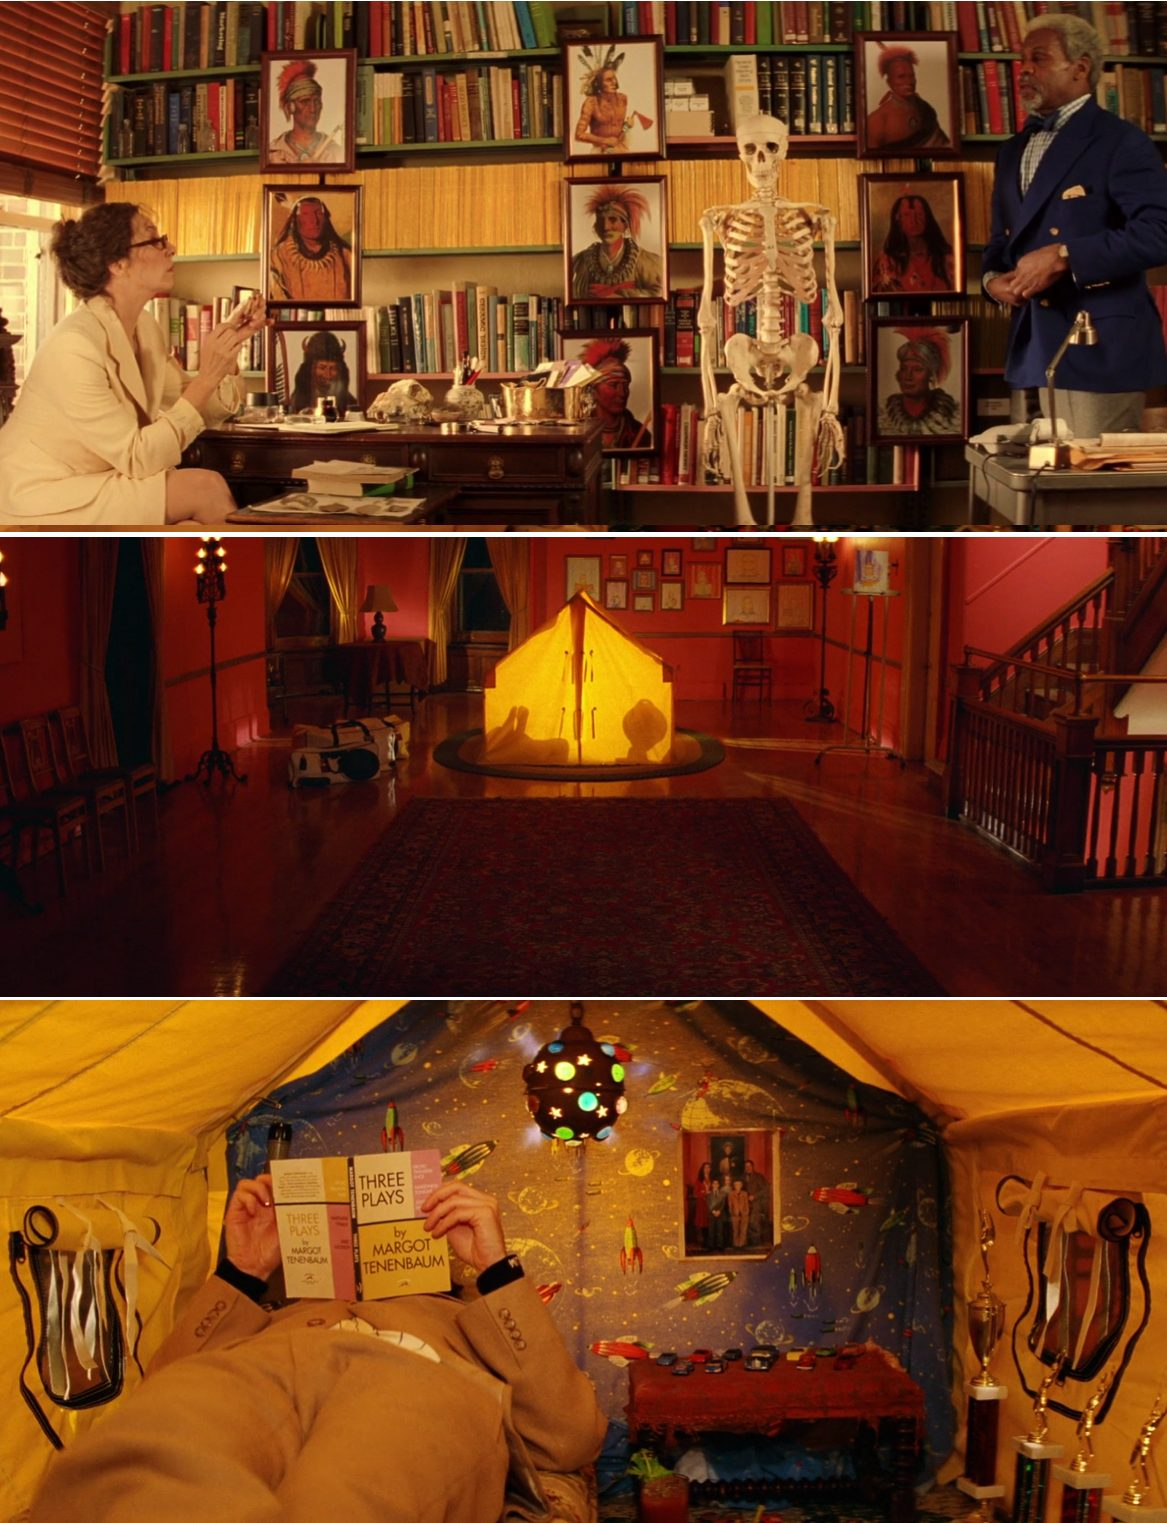 Royal Tenenbaums interio decor Wes Anderson